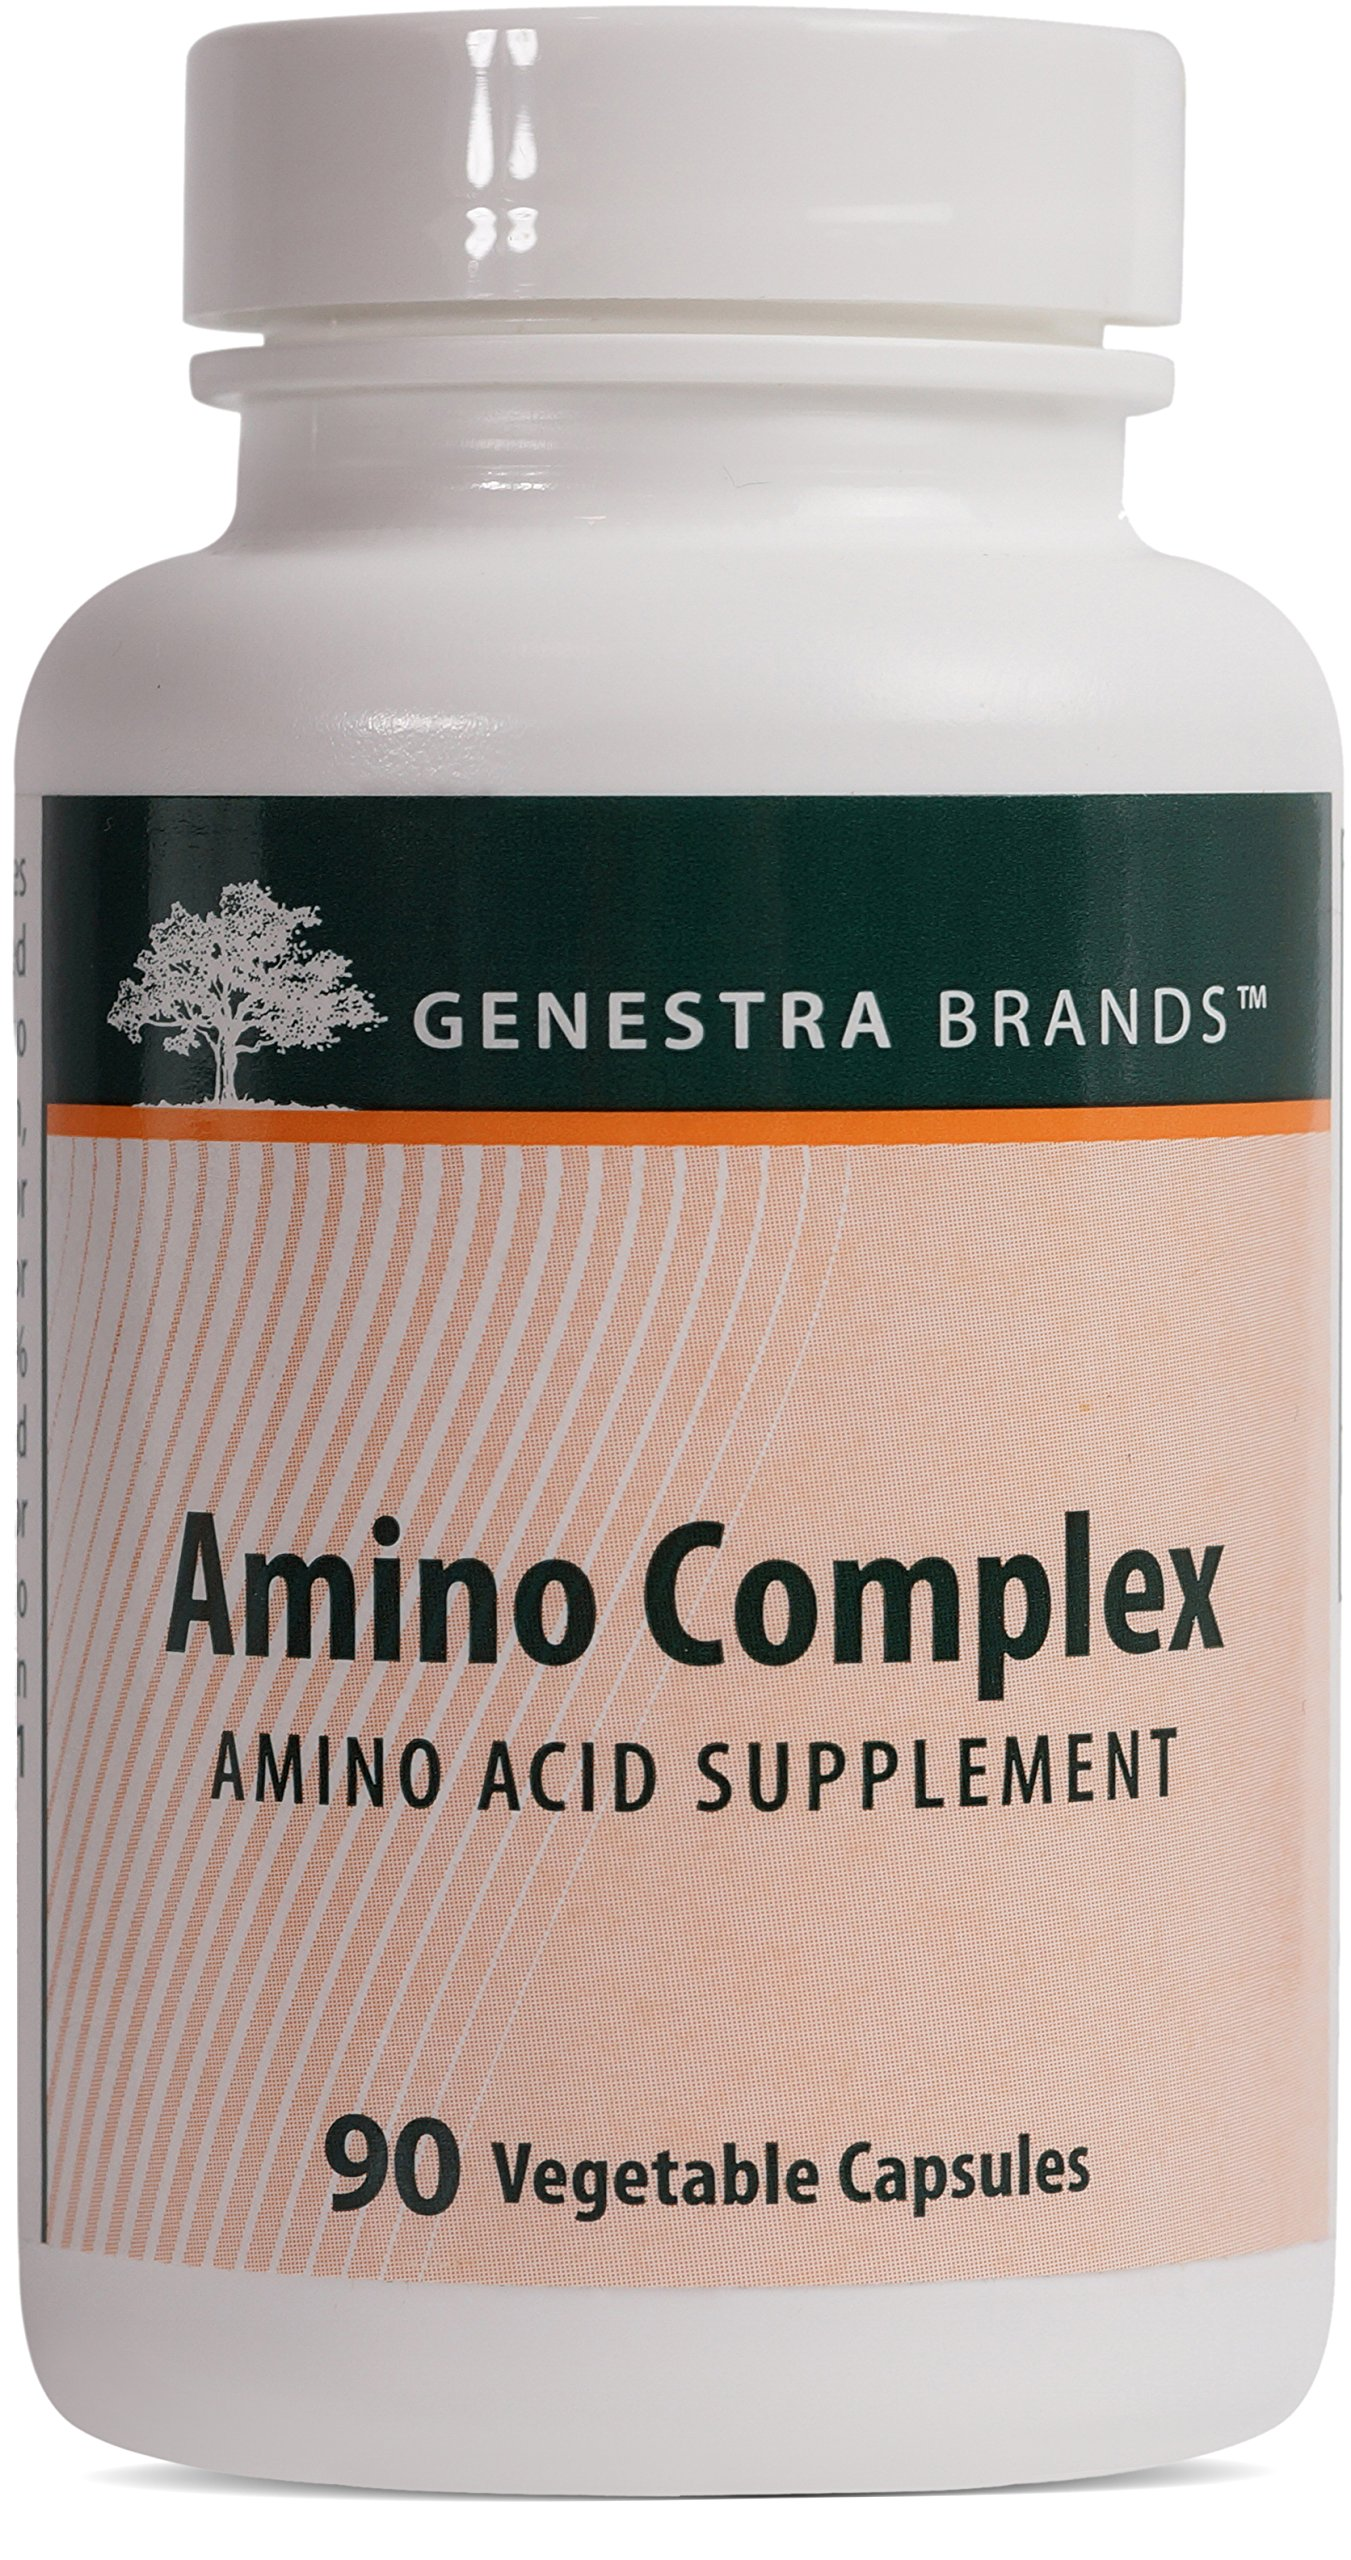 Genestra Brands - Amino Complex - Vegetarian Amino Acid Supplement - 90 Capsules